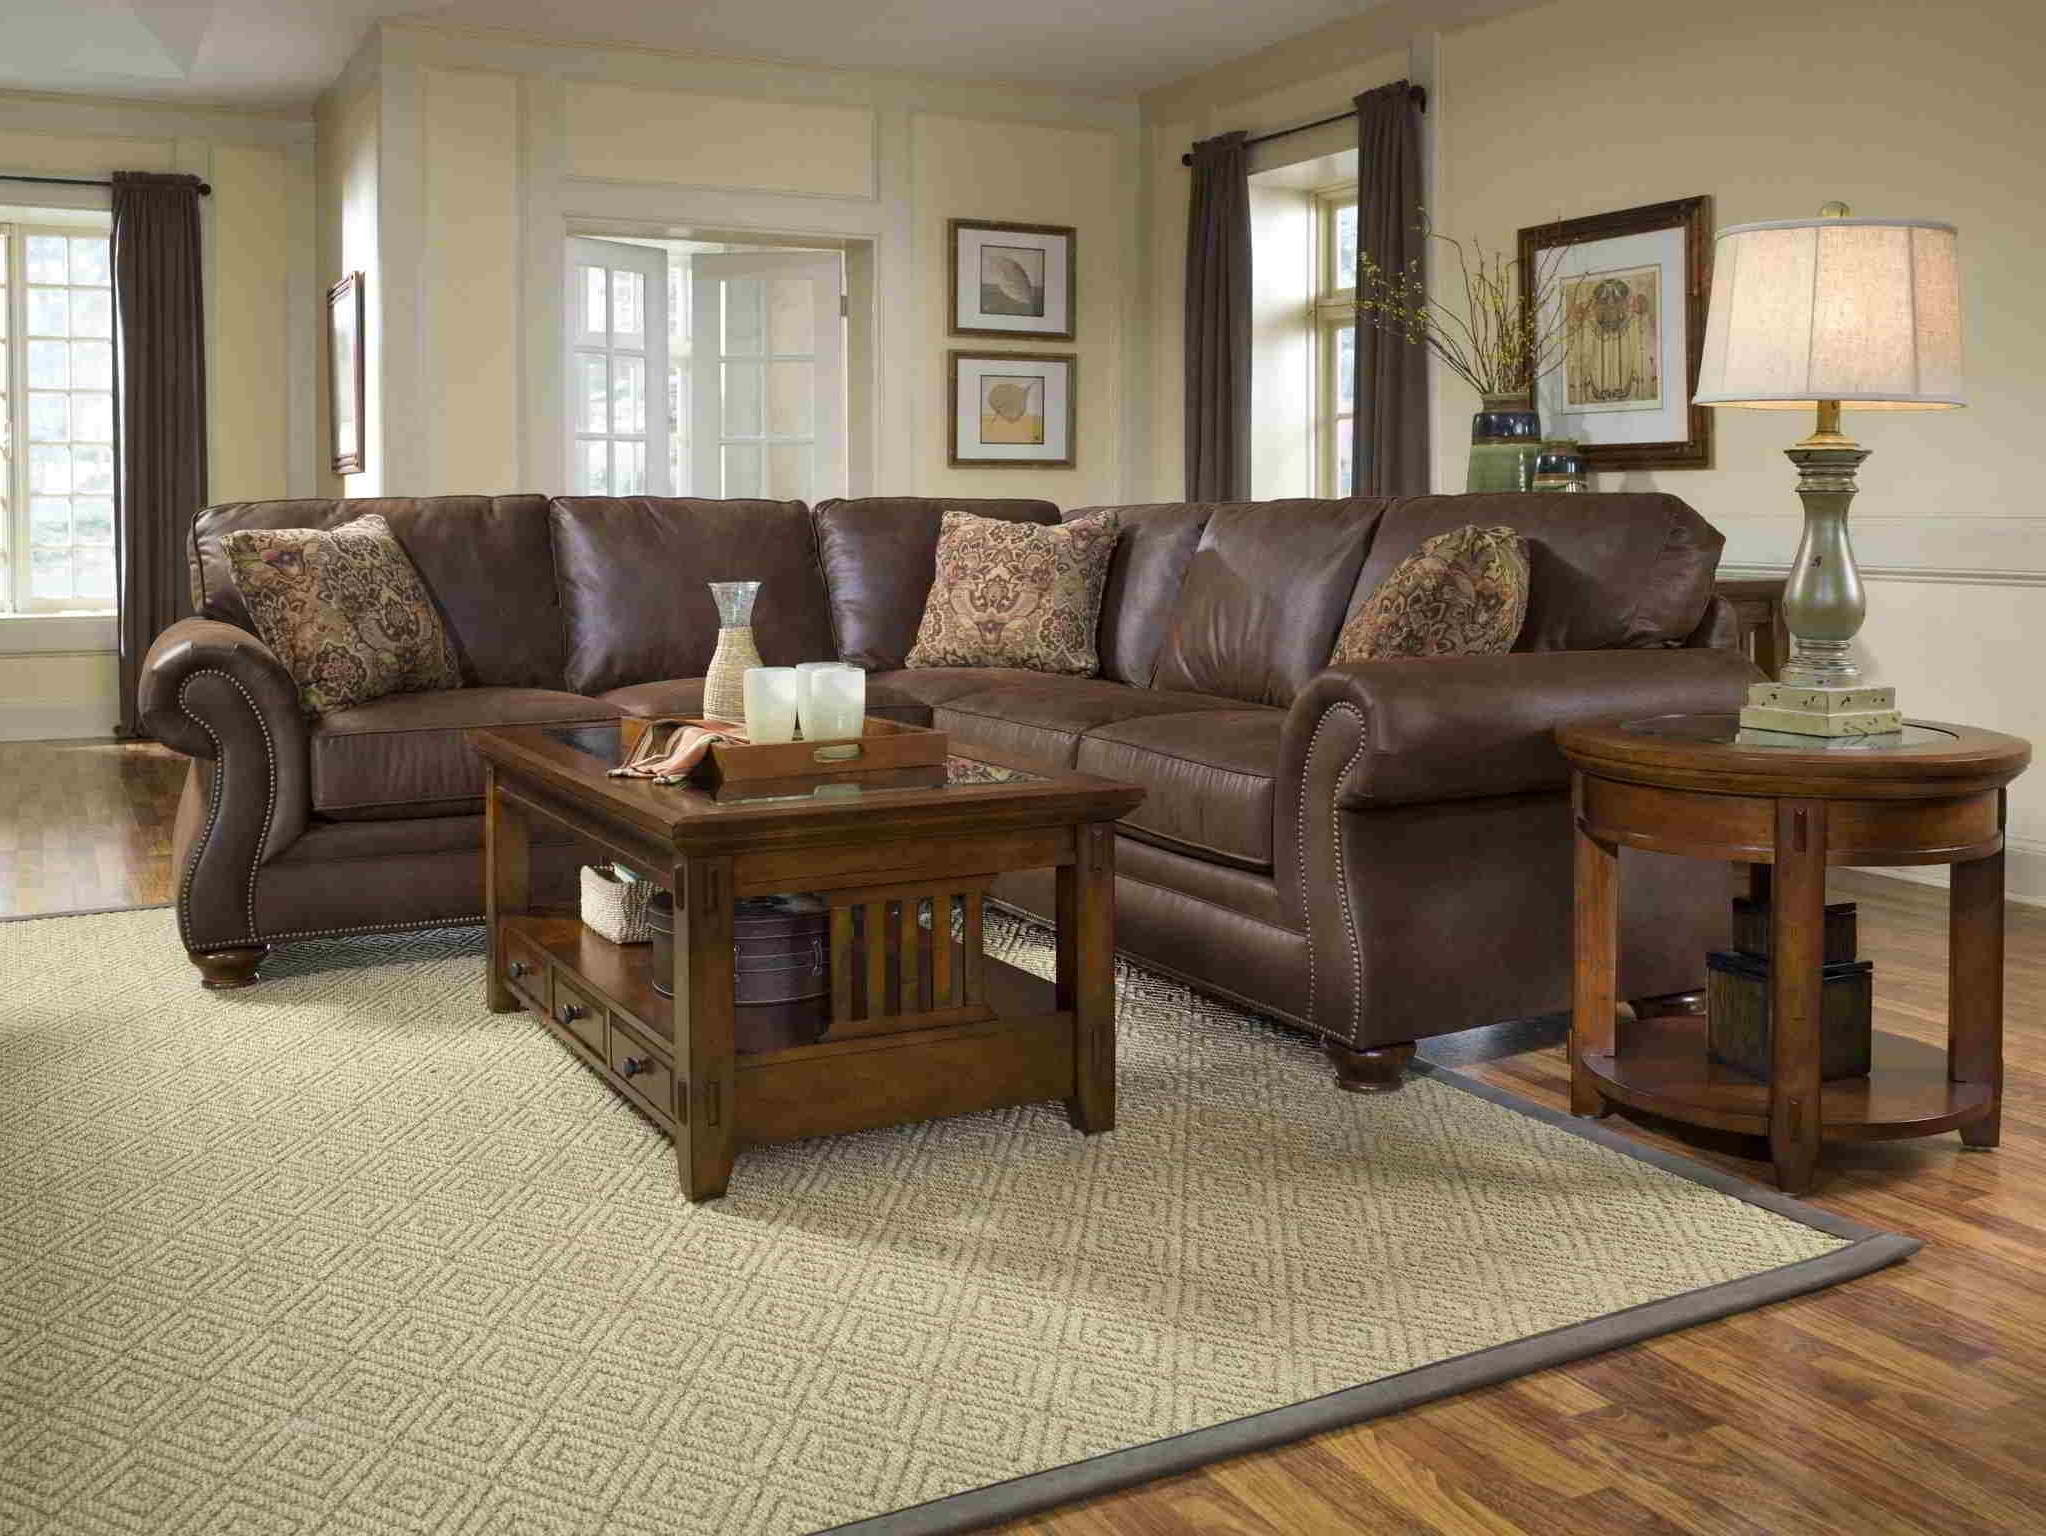 Country Style Sofas Intended For Preferred Country Style Sofas Uk Hereo Sofa – Helena Source (View 2 of 20)